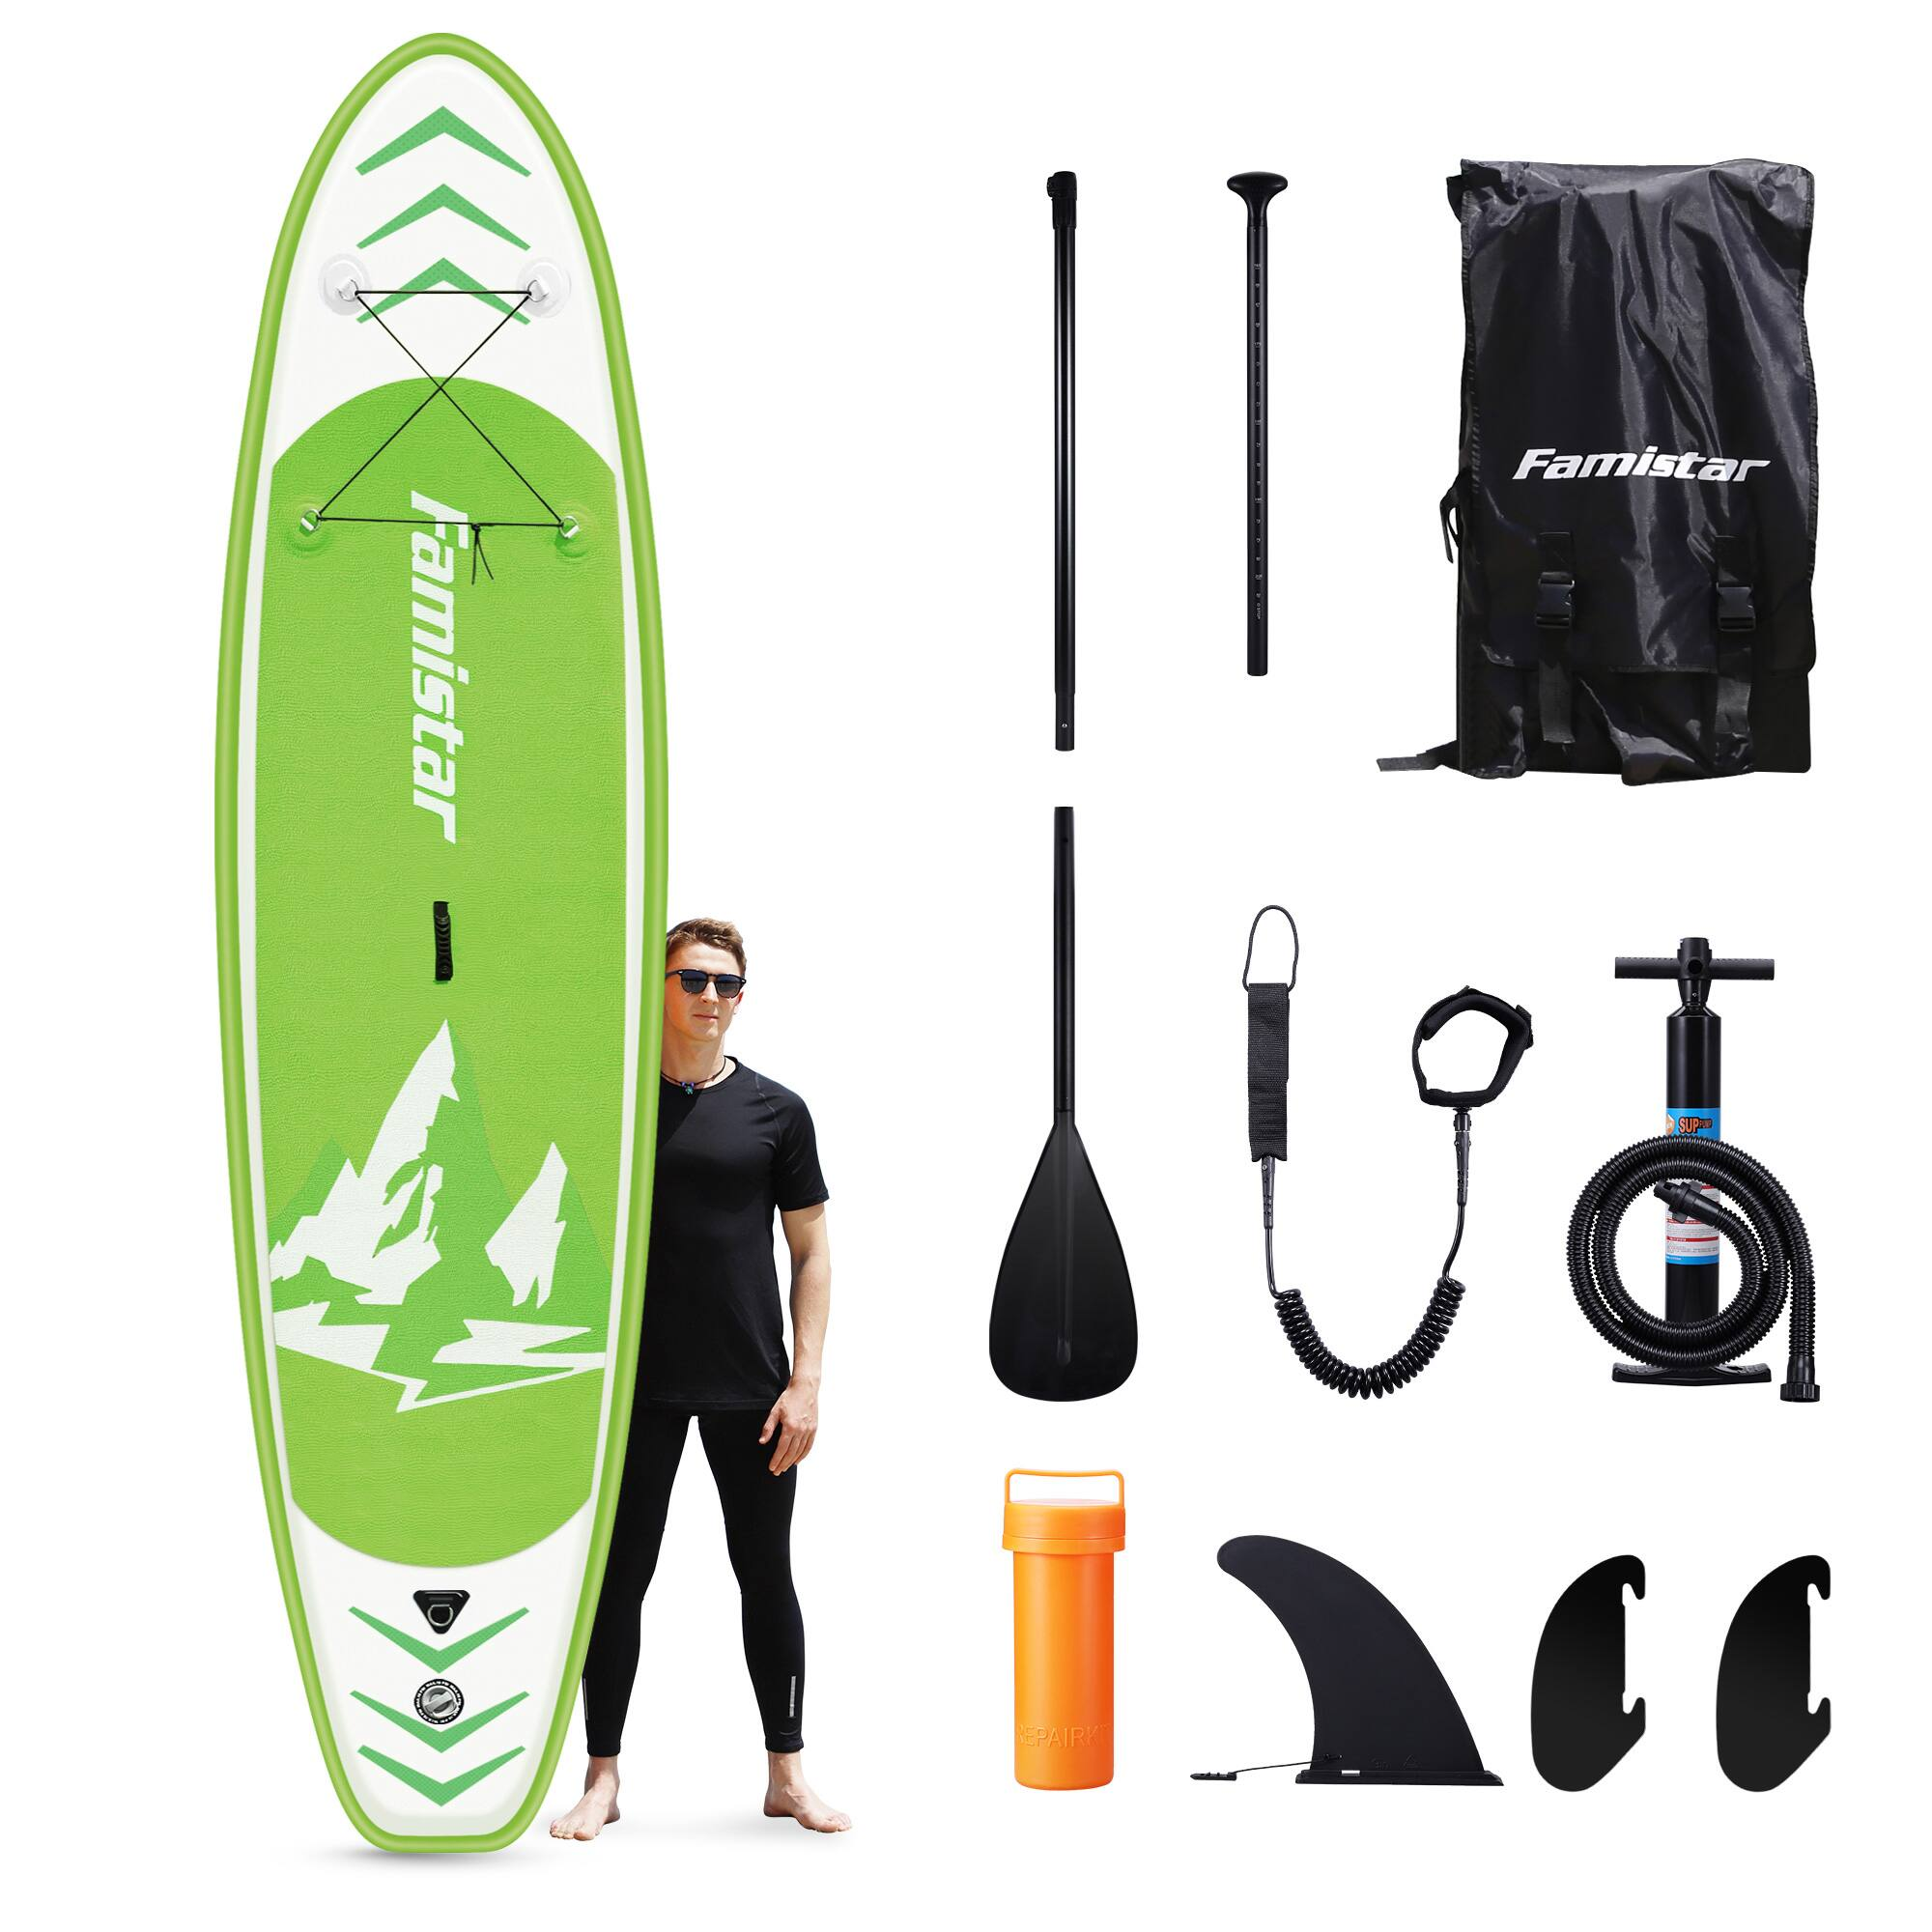 YMMV-Famistar 12' Inflatable Stand Up Paddle Board SUP w/ 3 Fins FS+$299